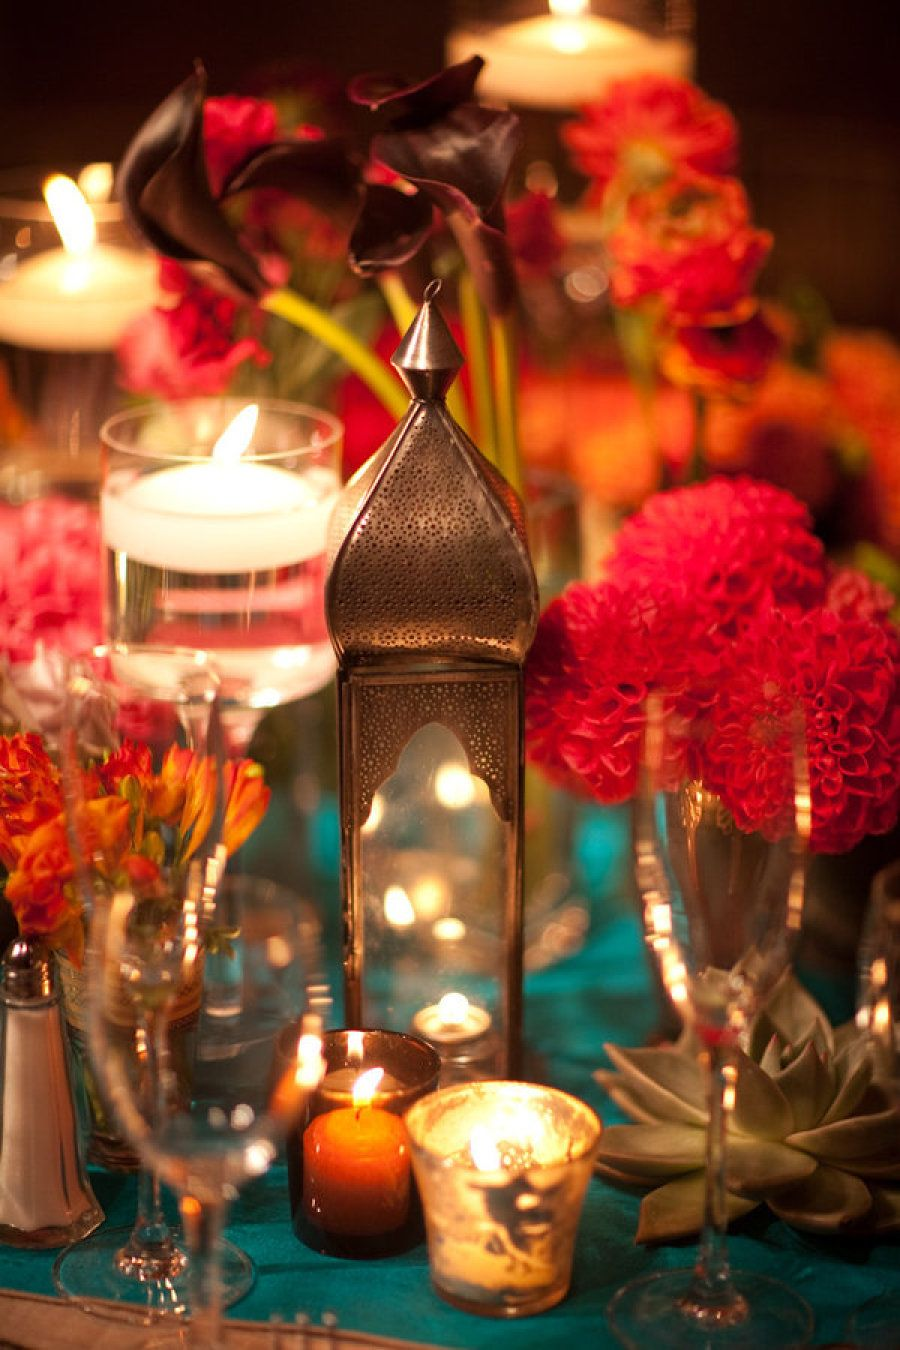 Tarrytown estate wedding from shira weinberger chandelier events photography shira weinberger shiraweinberger event planning chandelier events chandeliereventsny photobooth we love photobooths aloadofball Image collections